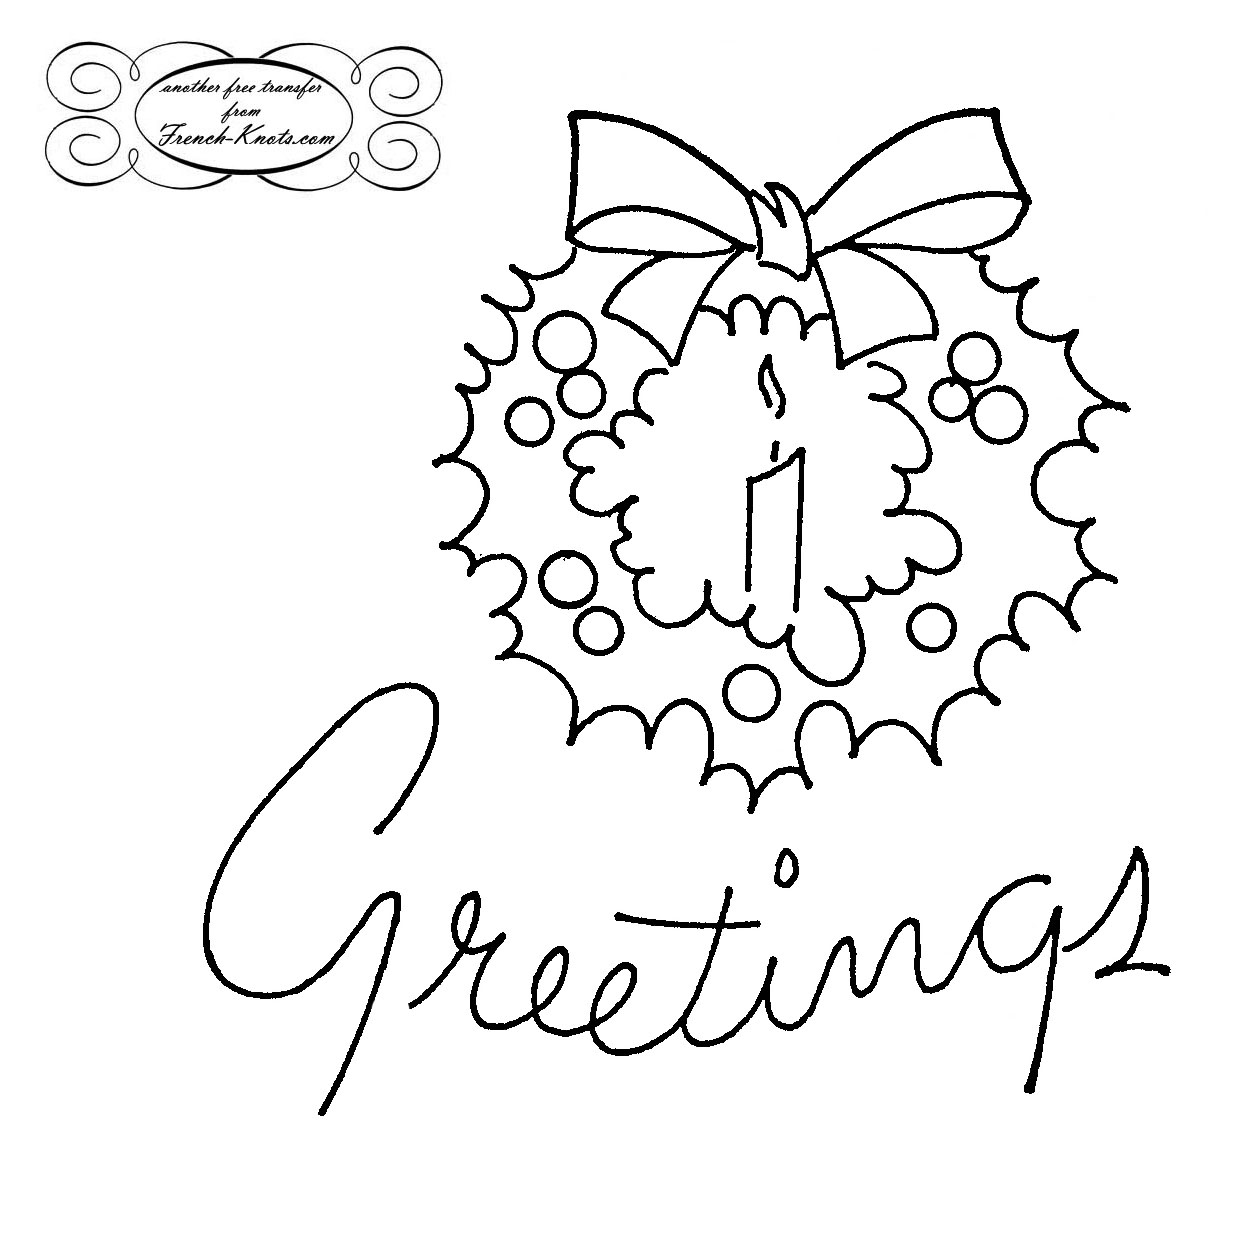 Christmas Greeting wreath embroidery transfer pattern